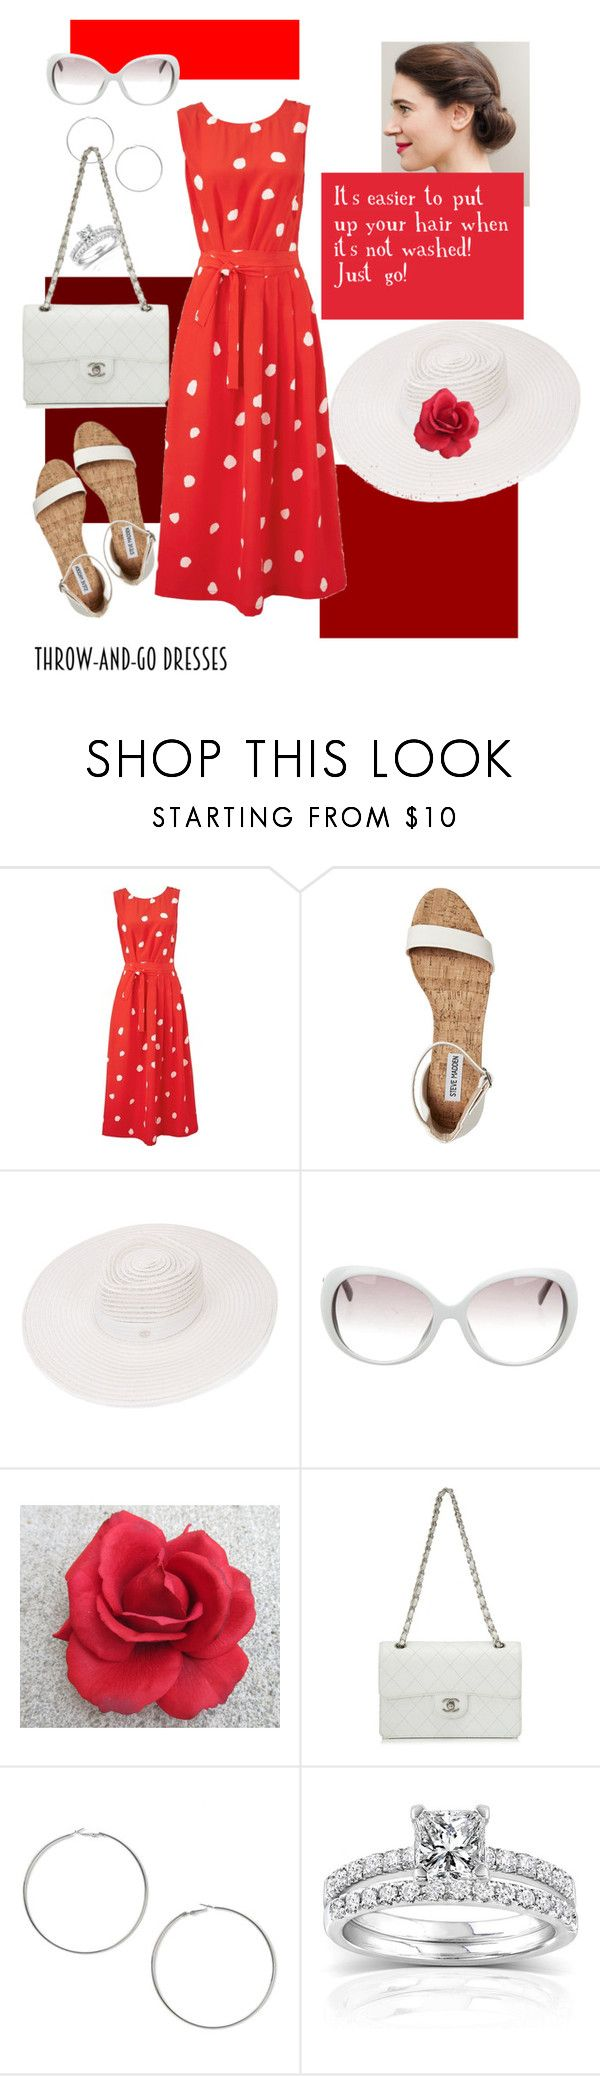 """""""Throw and Go Dresses - II"""" by mary-kay-de-jesus ❤ liked on Polyvore featuring L.K.Bennett, Maison Michel, Emilio Pucci, Chanel, Miss Selfridge and Annello"""